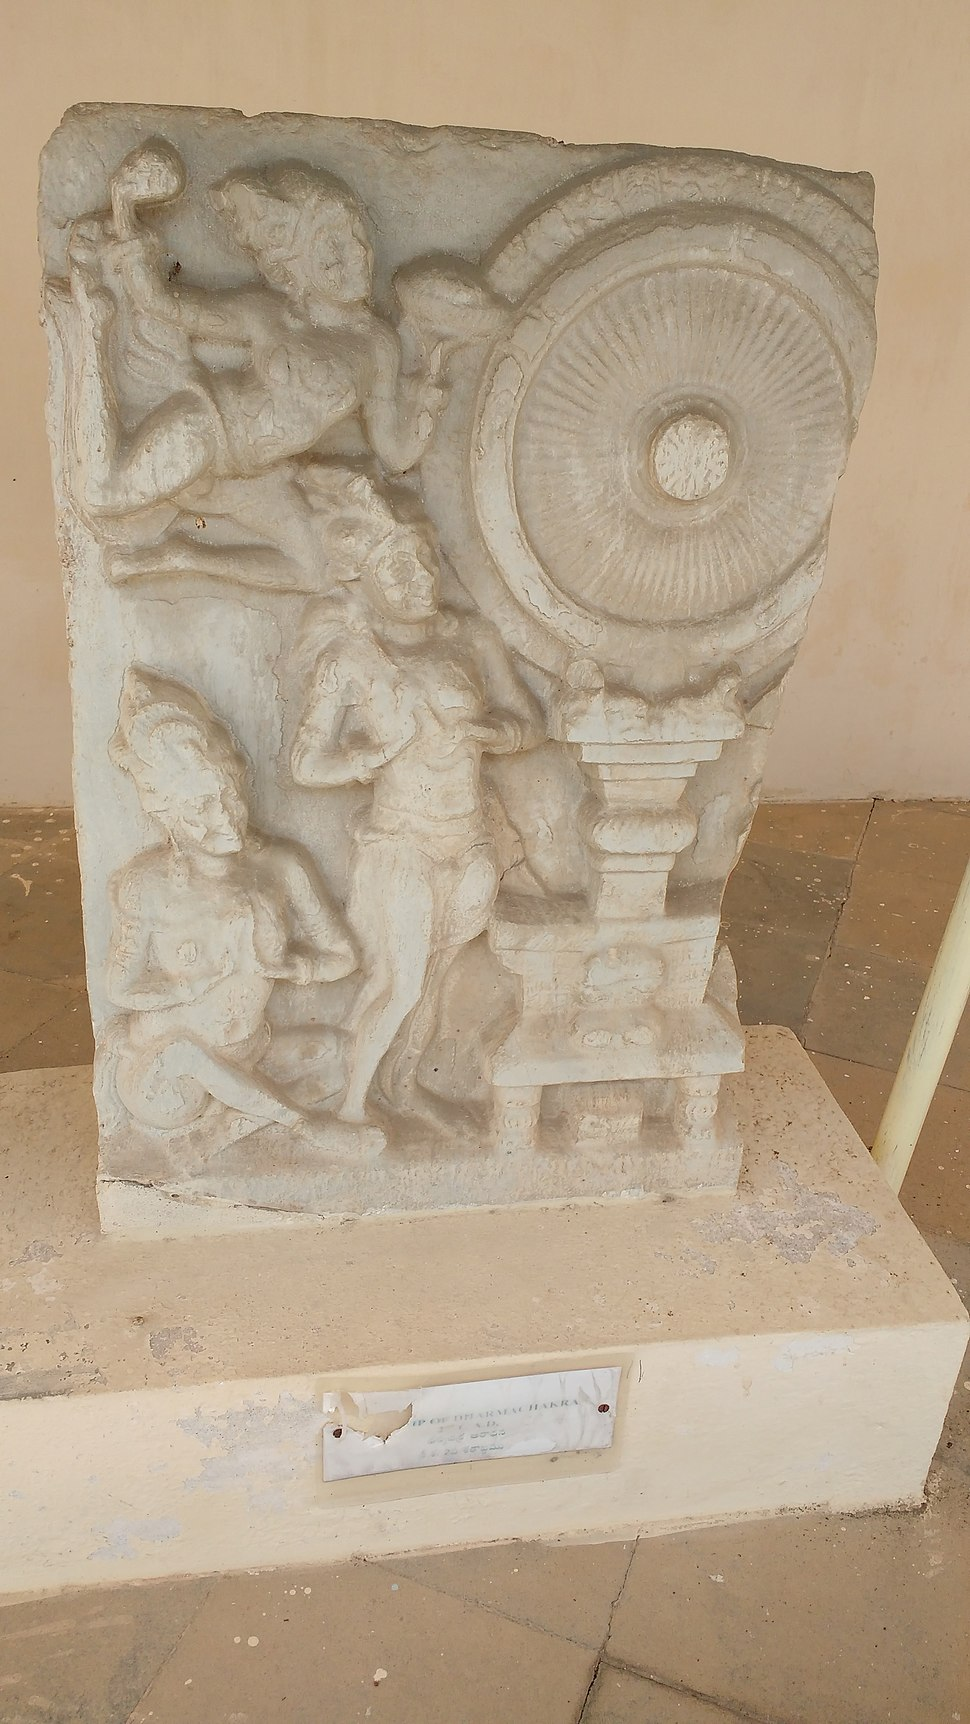 A sculpture depicting the Dharma chakra in the museum of Amaravathi